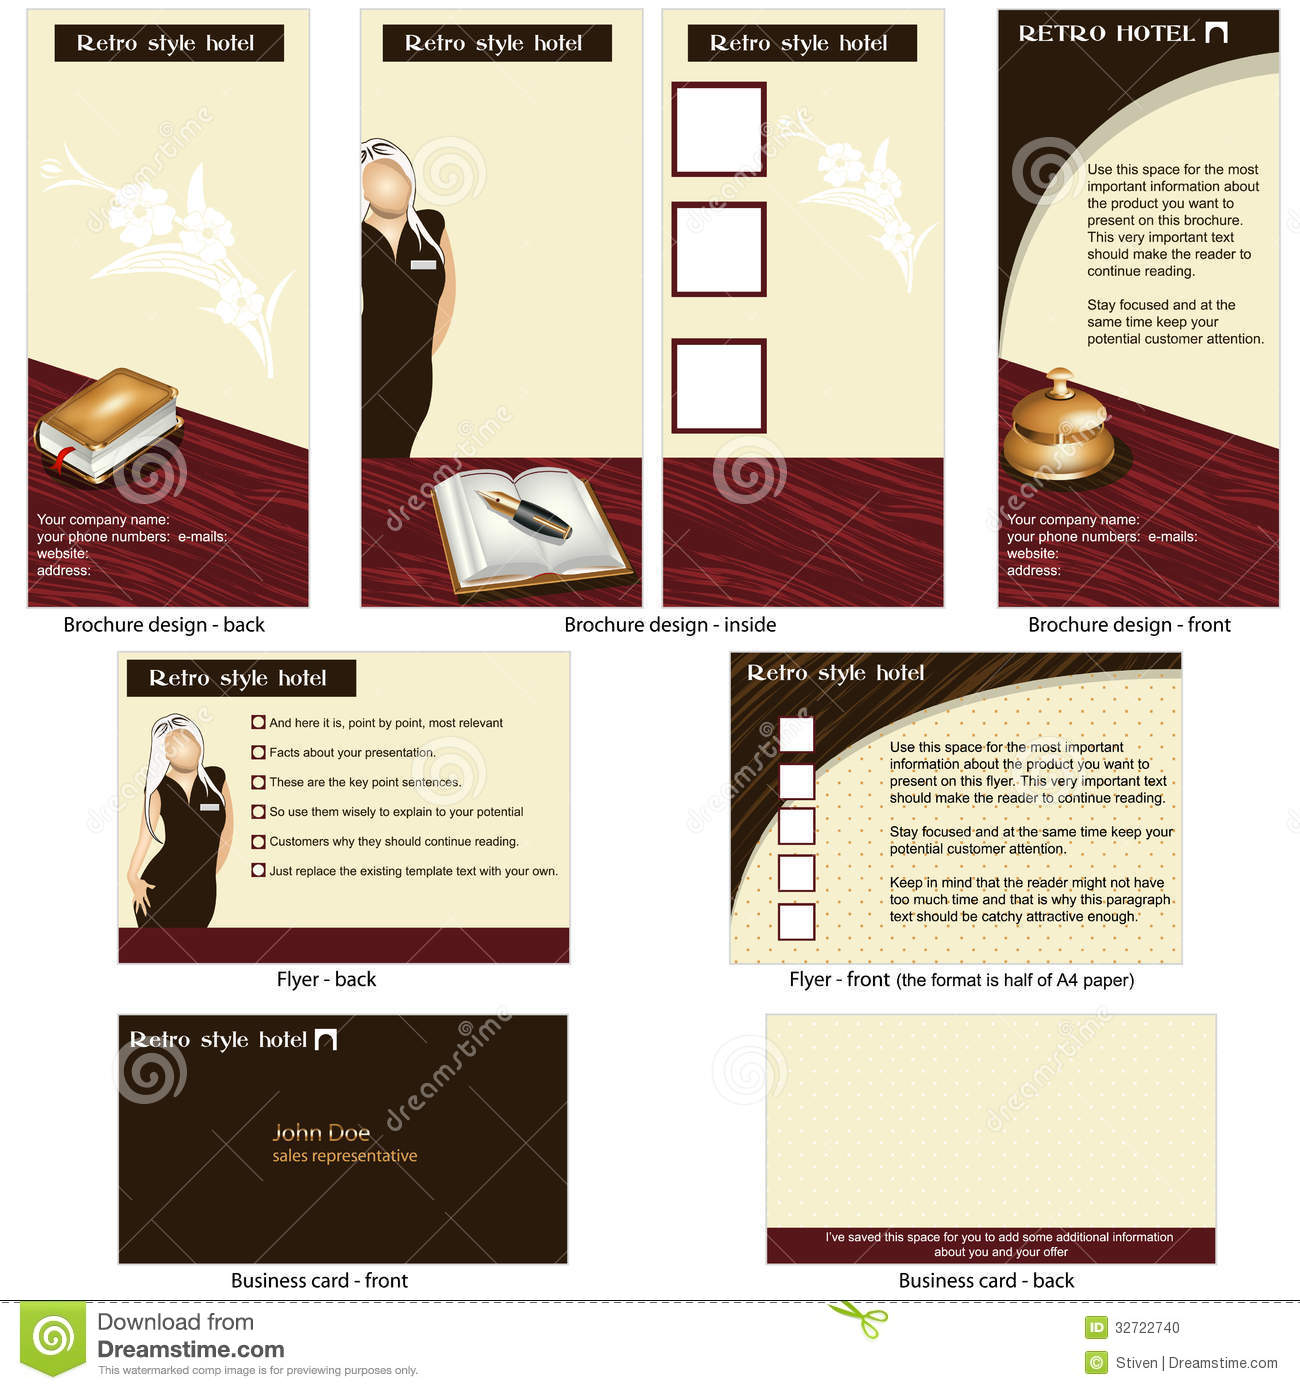 referal cover letter - cover letter resume ideas